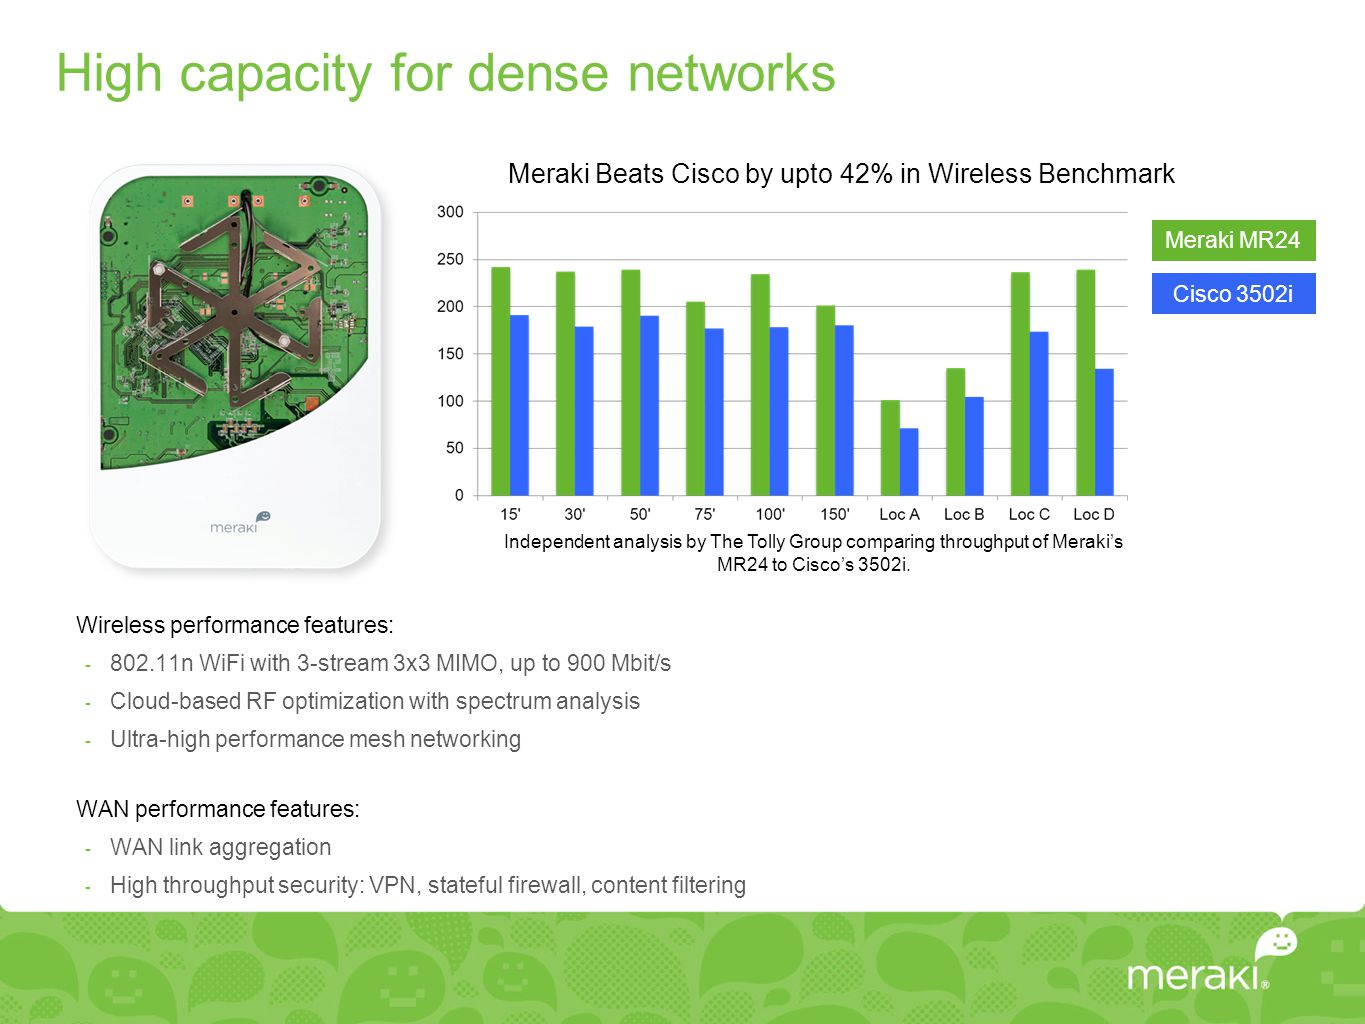 High capacity for dense networks Wireless performance features:  802.11n WiFi with 3-stream 3x3 MIMO, up to 900 Mbit/s  Cloud-based RF optimization with spectrum analysis  Ultra-high performance mesh networking WAN performance features:  WAN link aggregation  High throughput security: VPN, stateful firewall, content filtering Independent analysis by The Tolly Group comparing throughput of Meraki's MR24 to Cisco's 3502i.